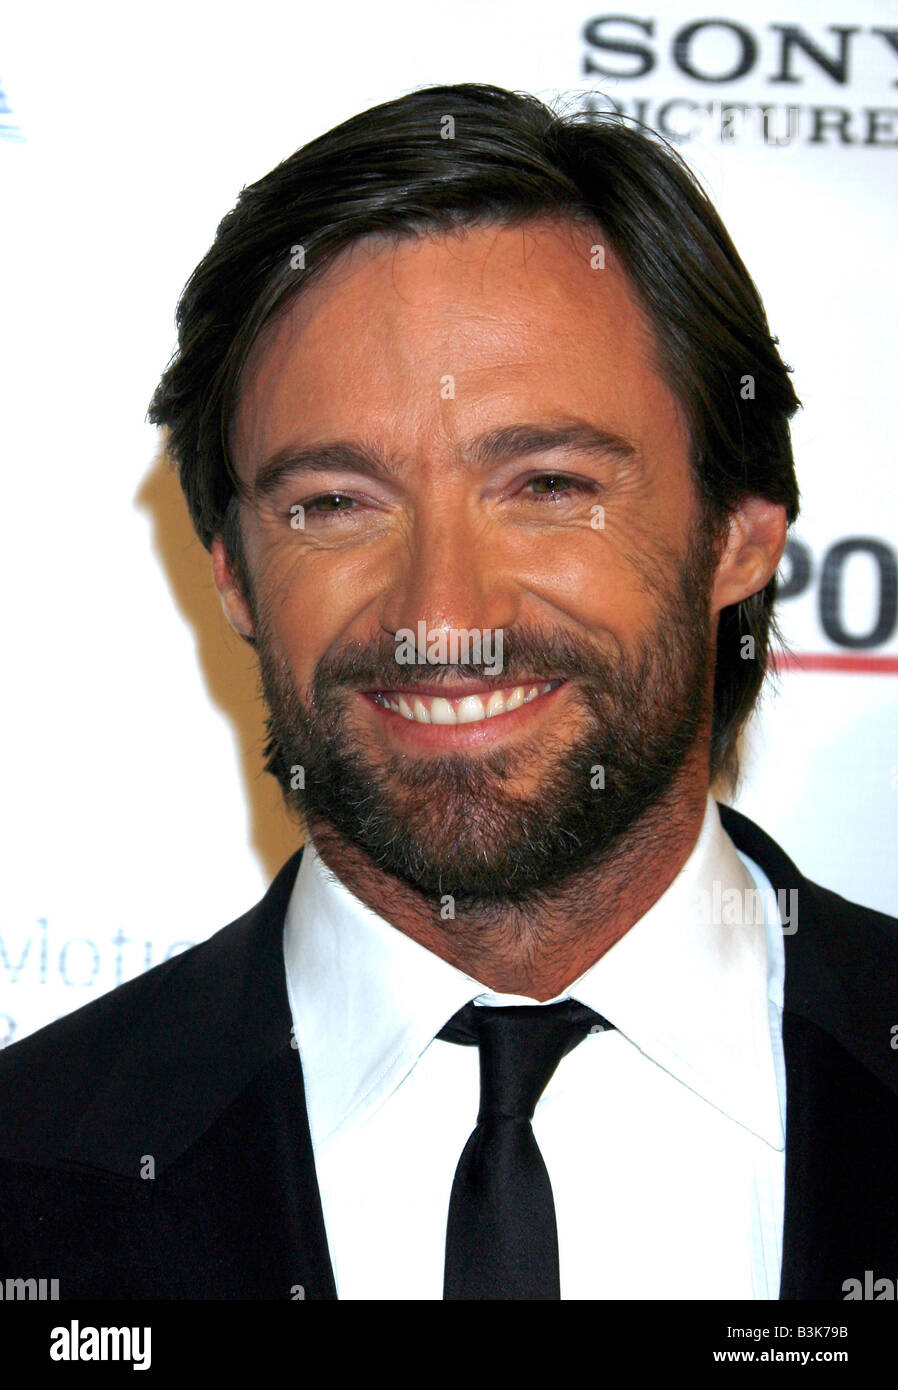 HUGH JACKMAN US film actor in 2007 - Stock Image